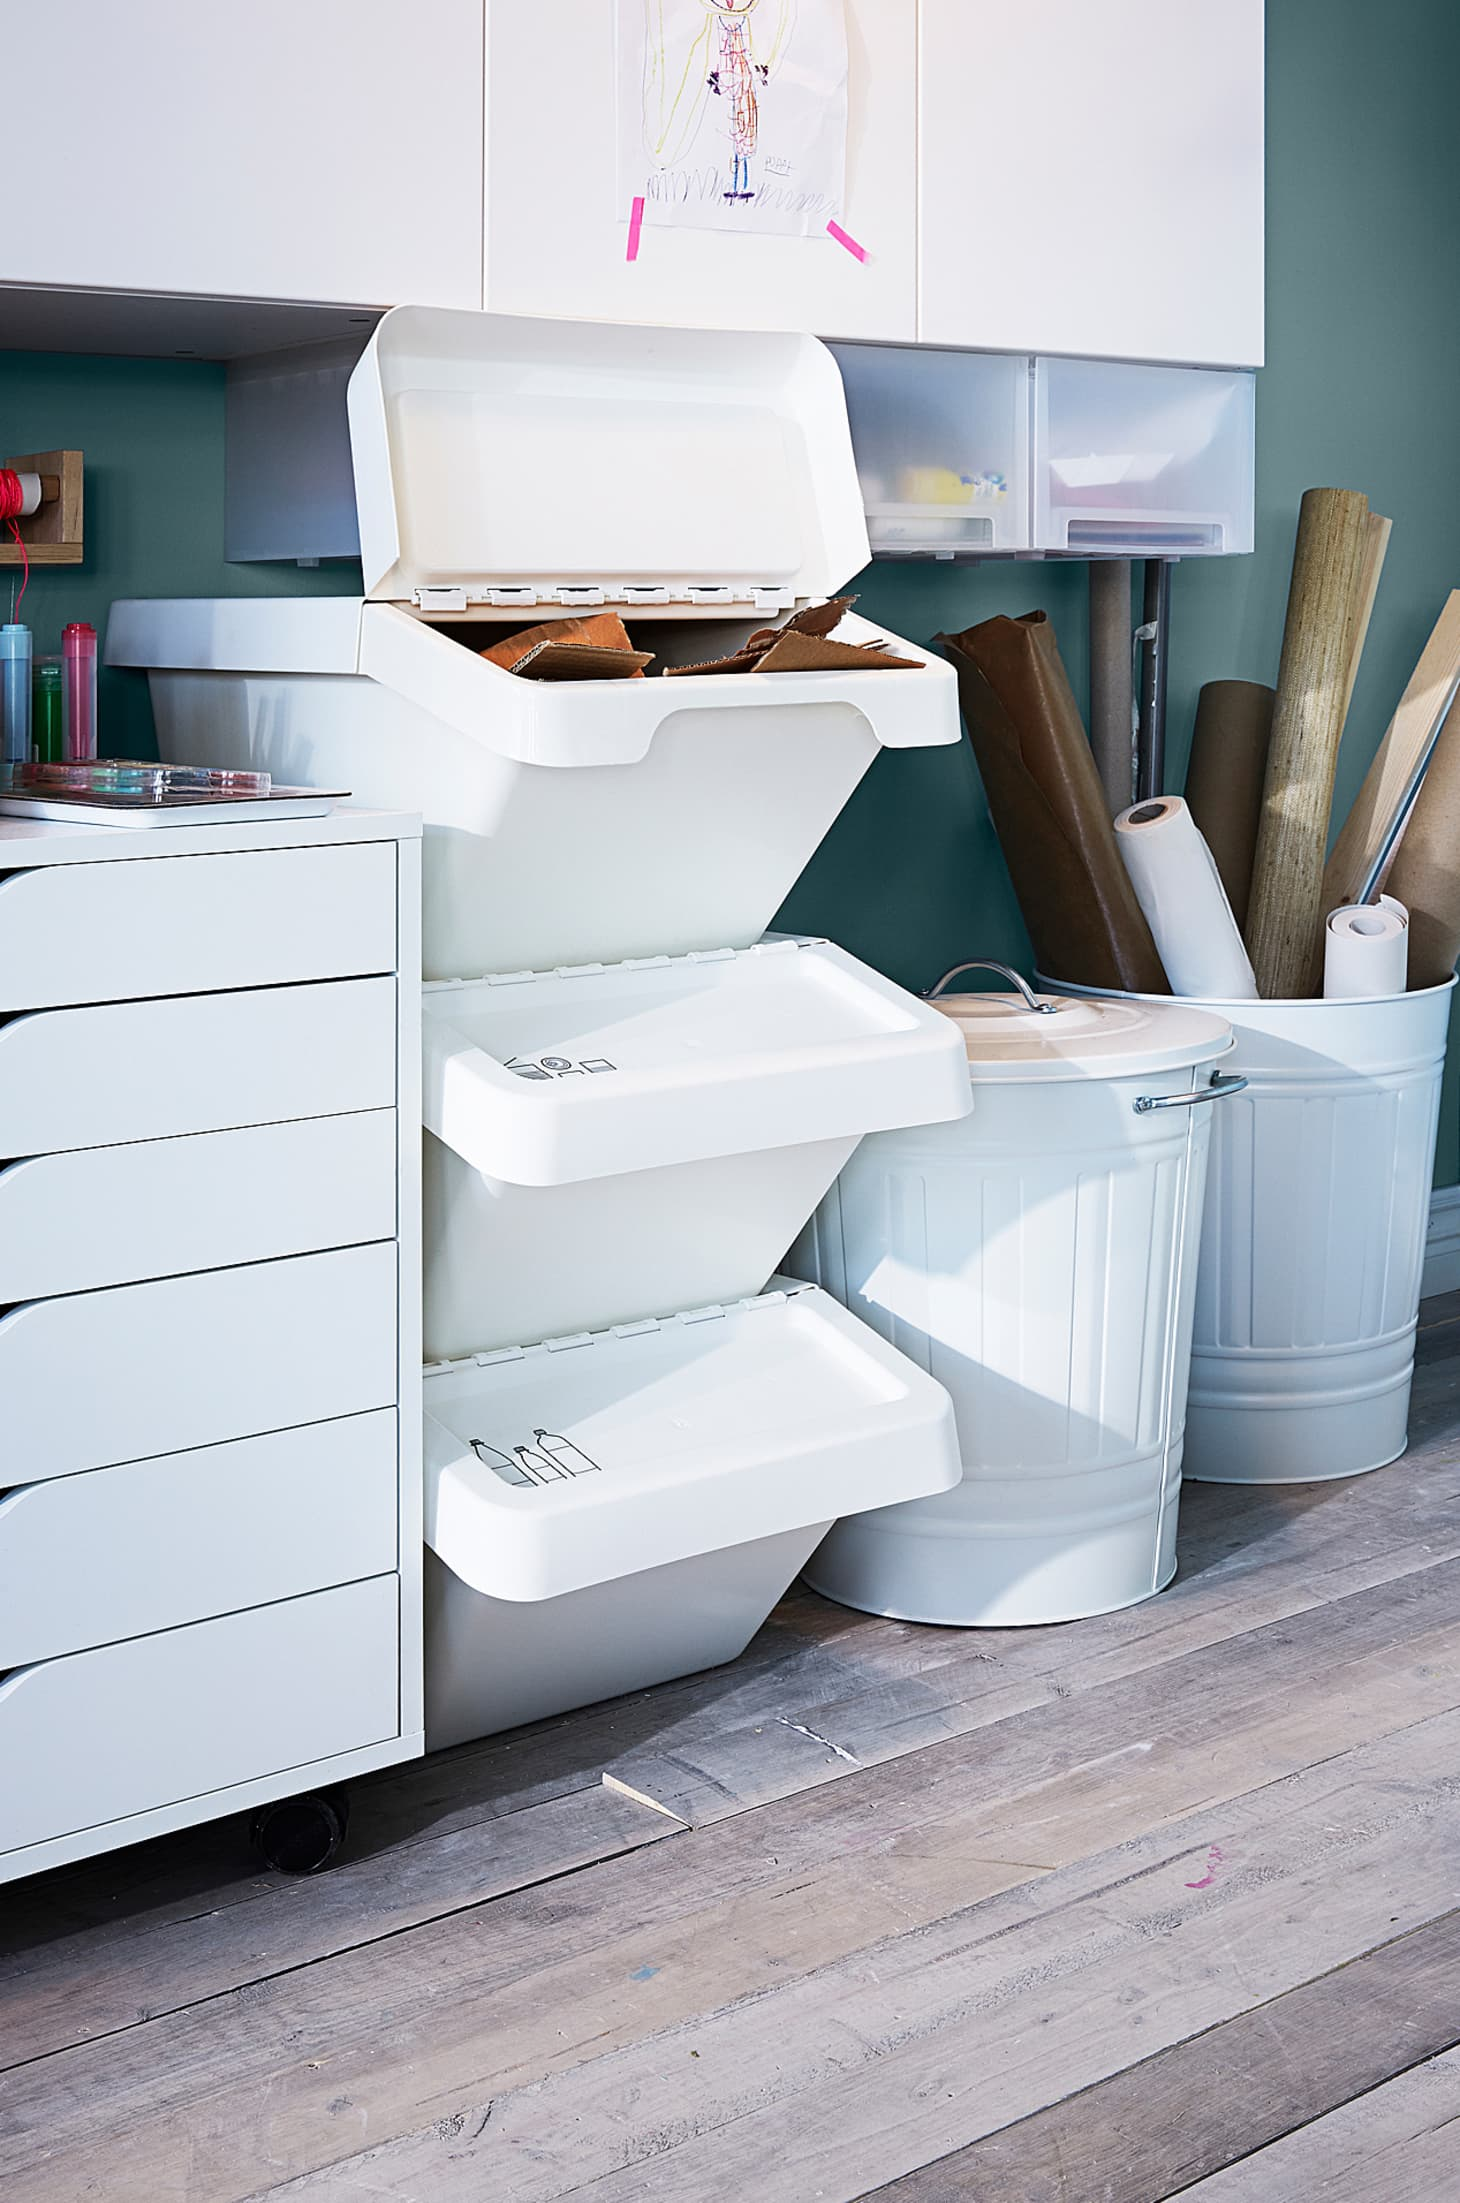 Ikea Recycling Bins And Green Initiatives Apartment Therapy